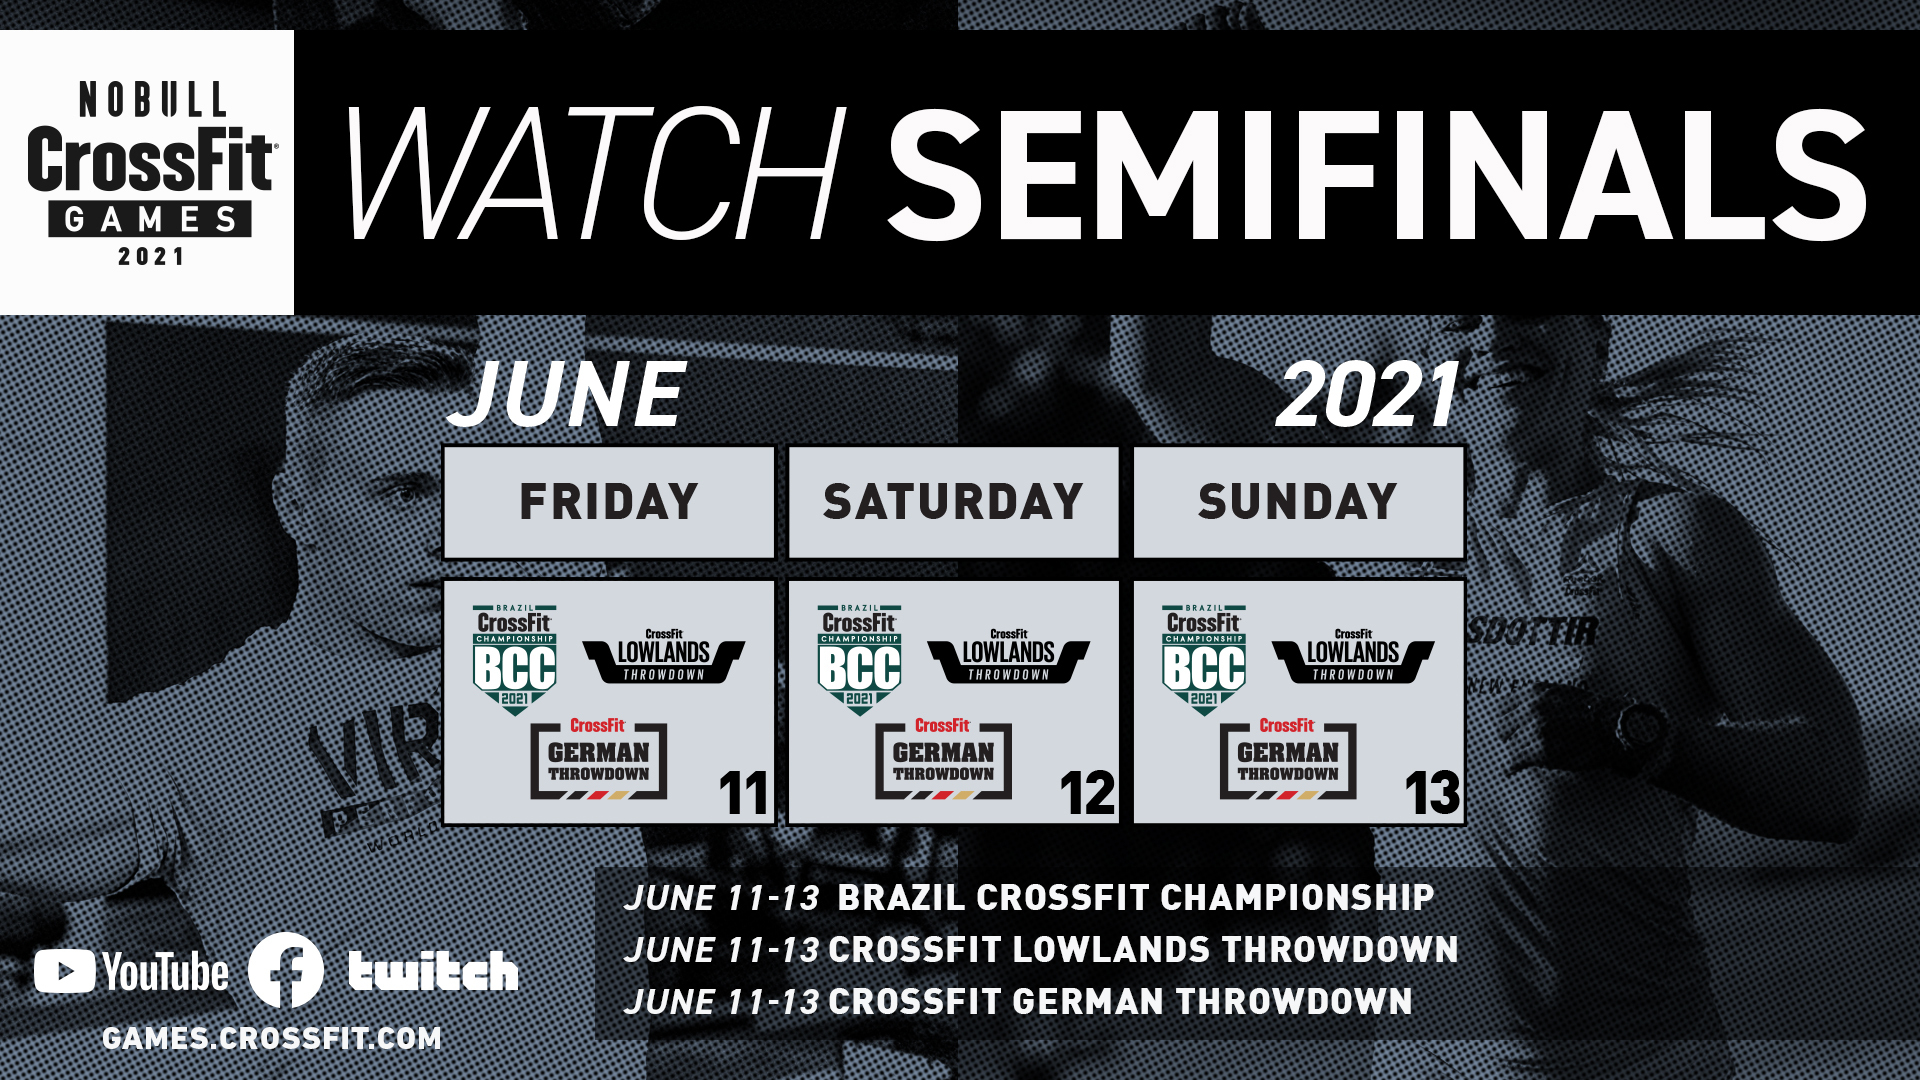 Week 3 Semifinals How to Watch